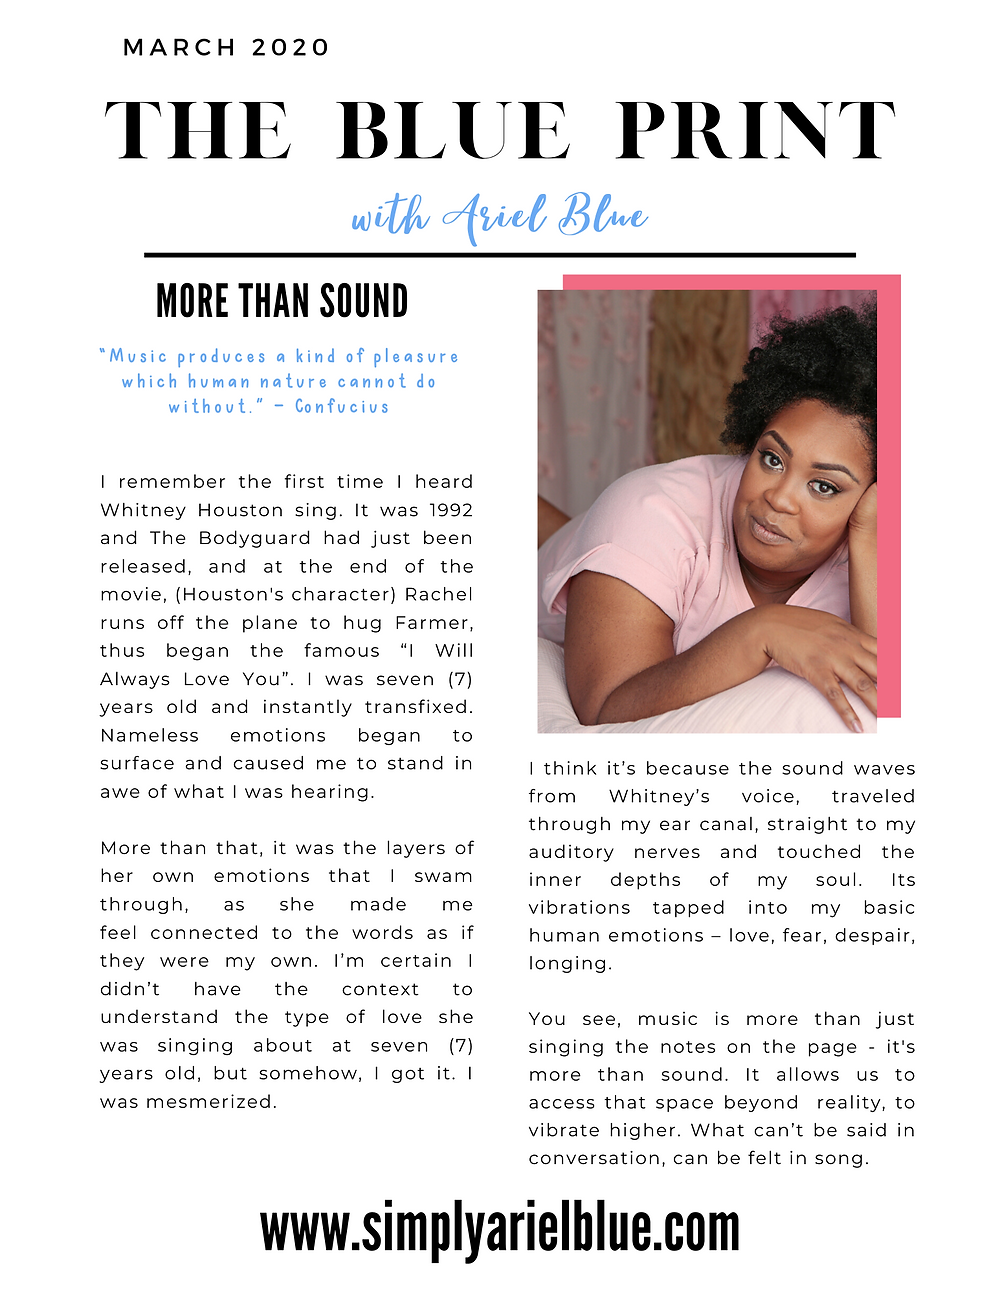 The Blue Print | March 2020 | Page 1 | Magical Music